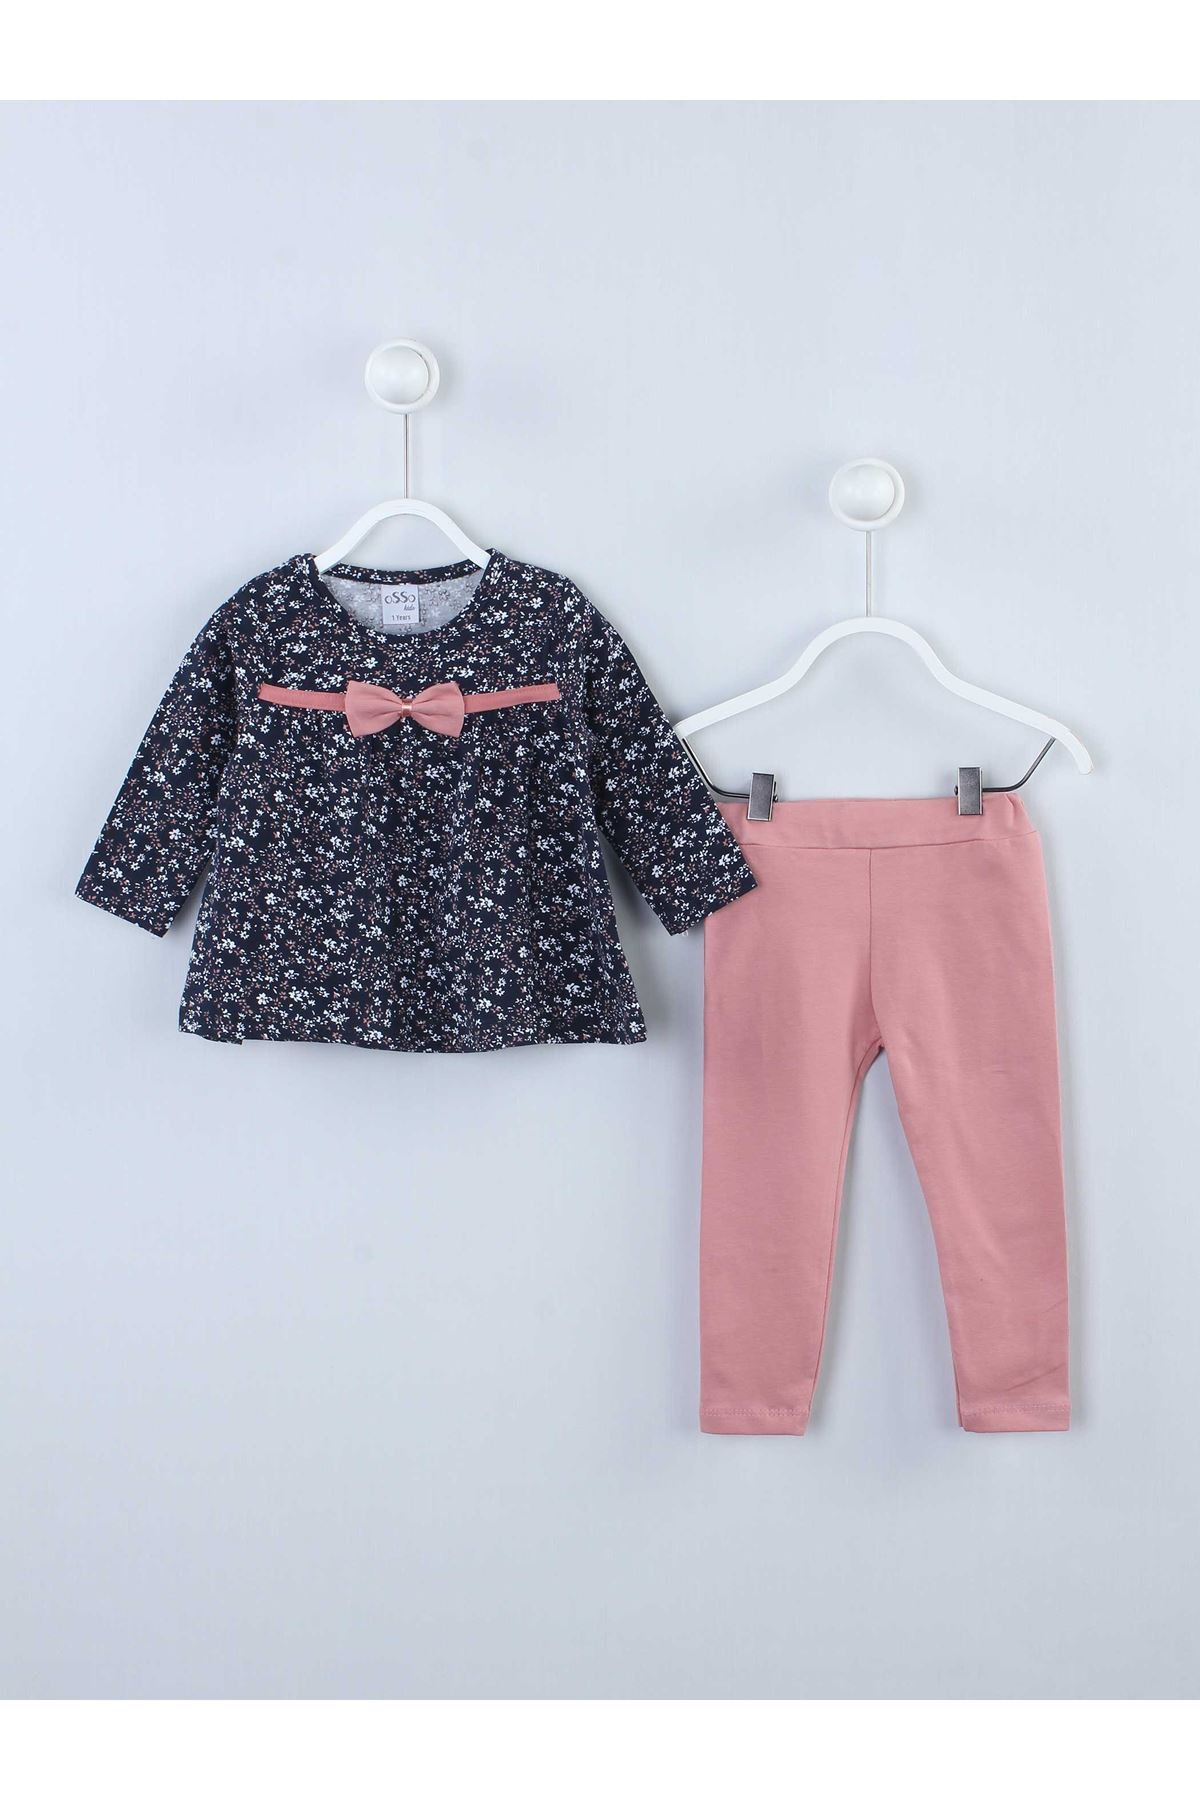 Children girls tights suit top T-shirt tights cotton Child Girl daily season wear Kids outfit models